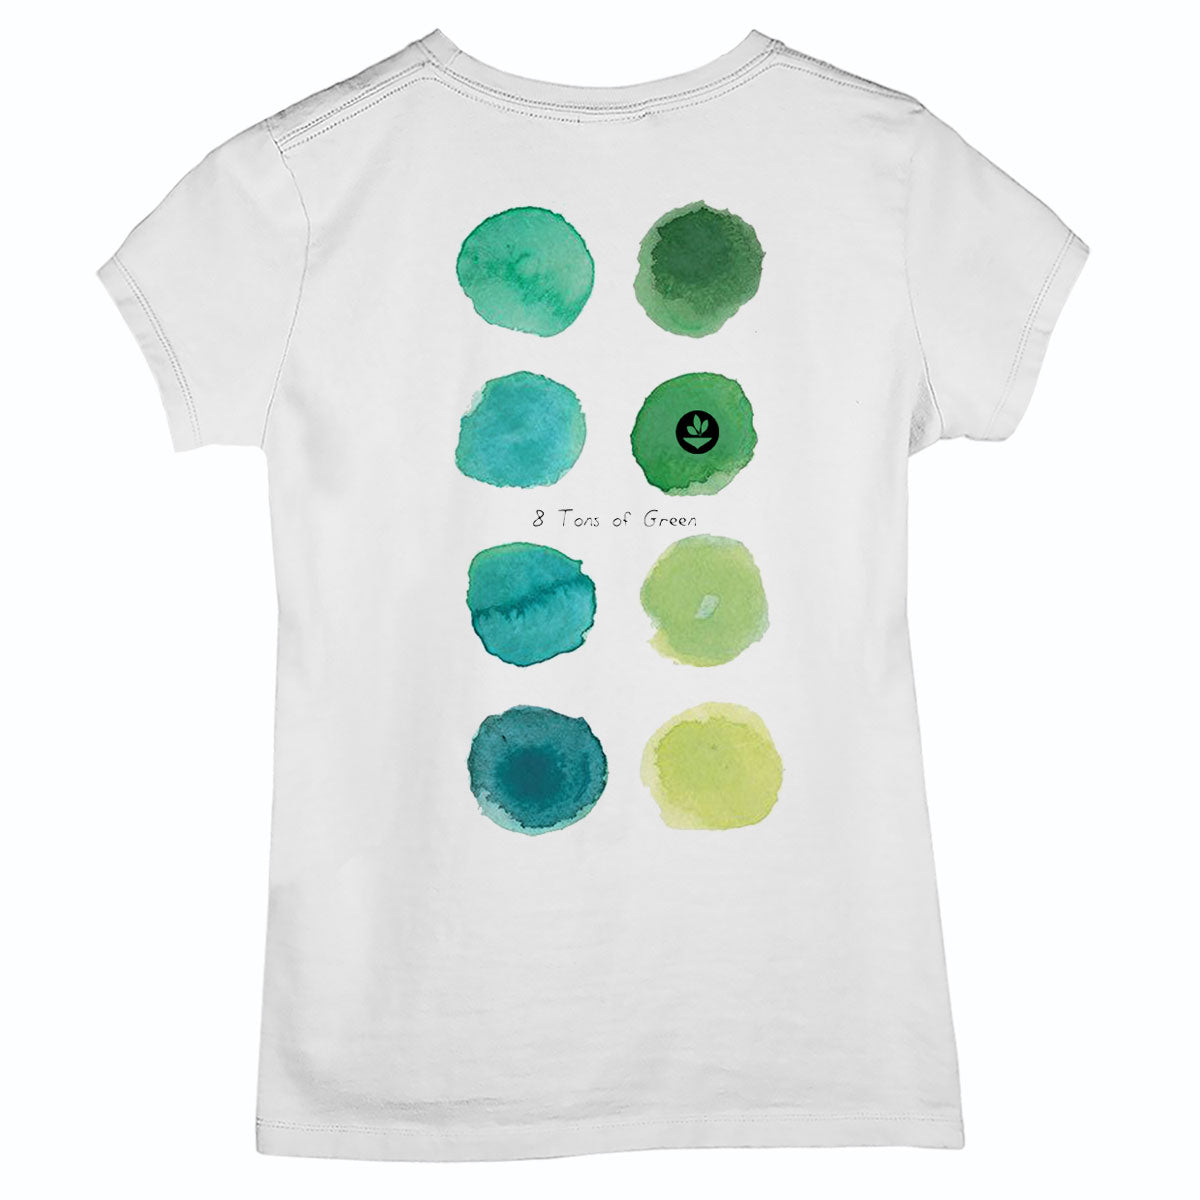 Camiseta Baby Look 8 Tons Of Green